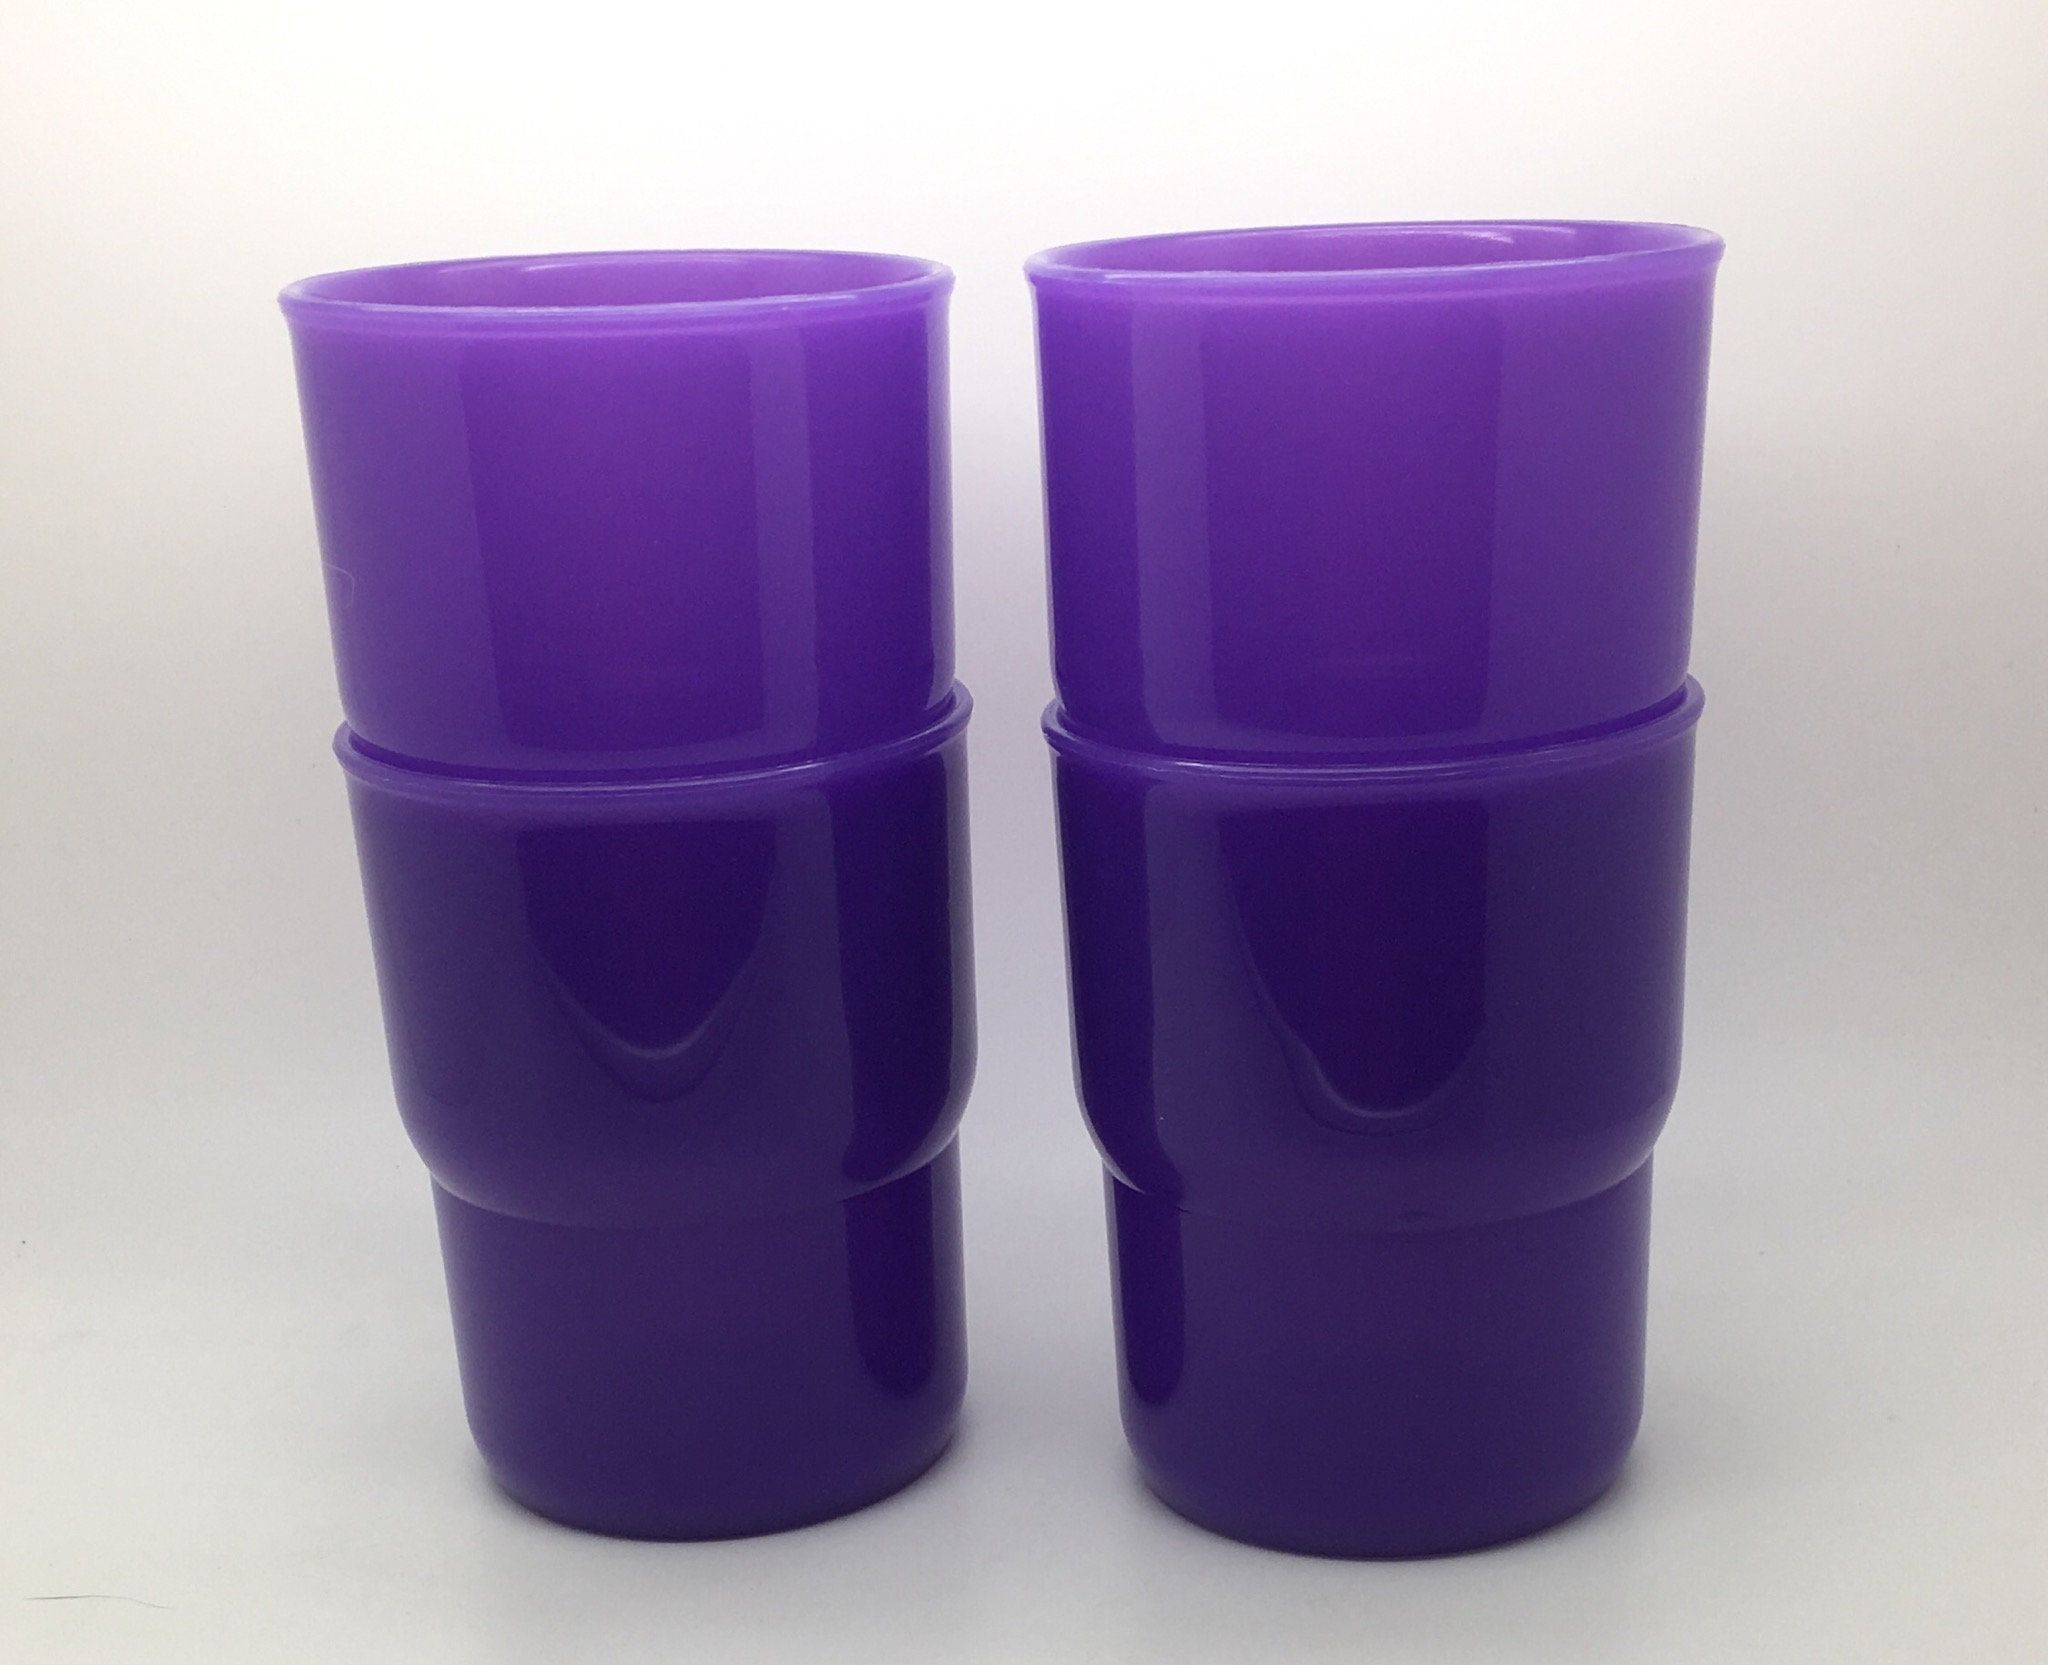 Vintage Tupperware Tumblers 8 Oz G Purple Short Stackable Etsy Vintage Tupperware Tupperware Tumbler